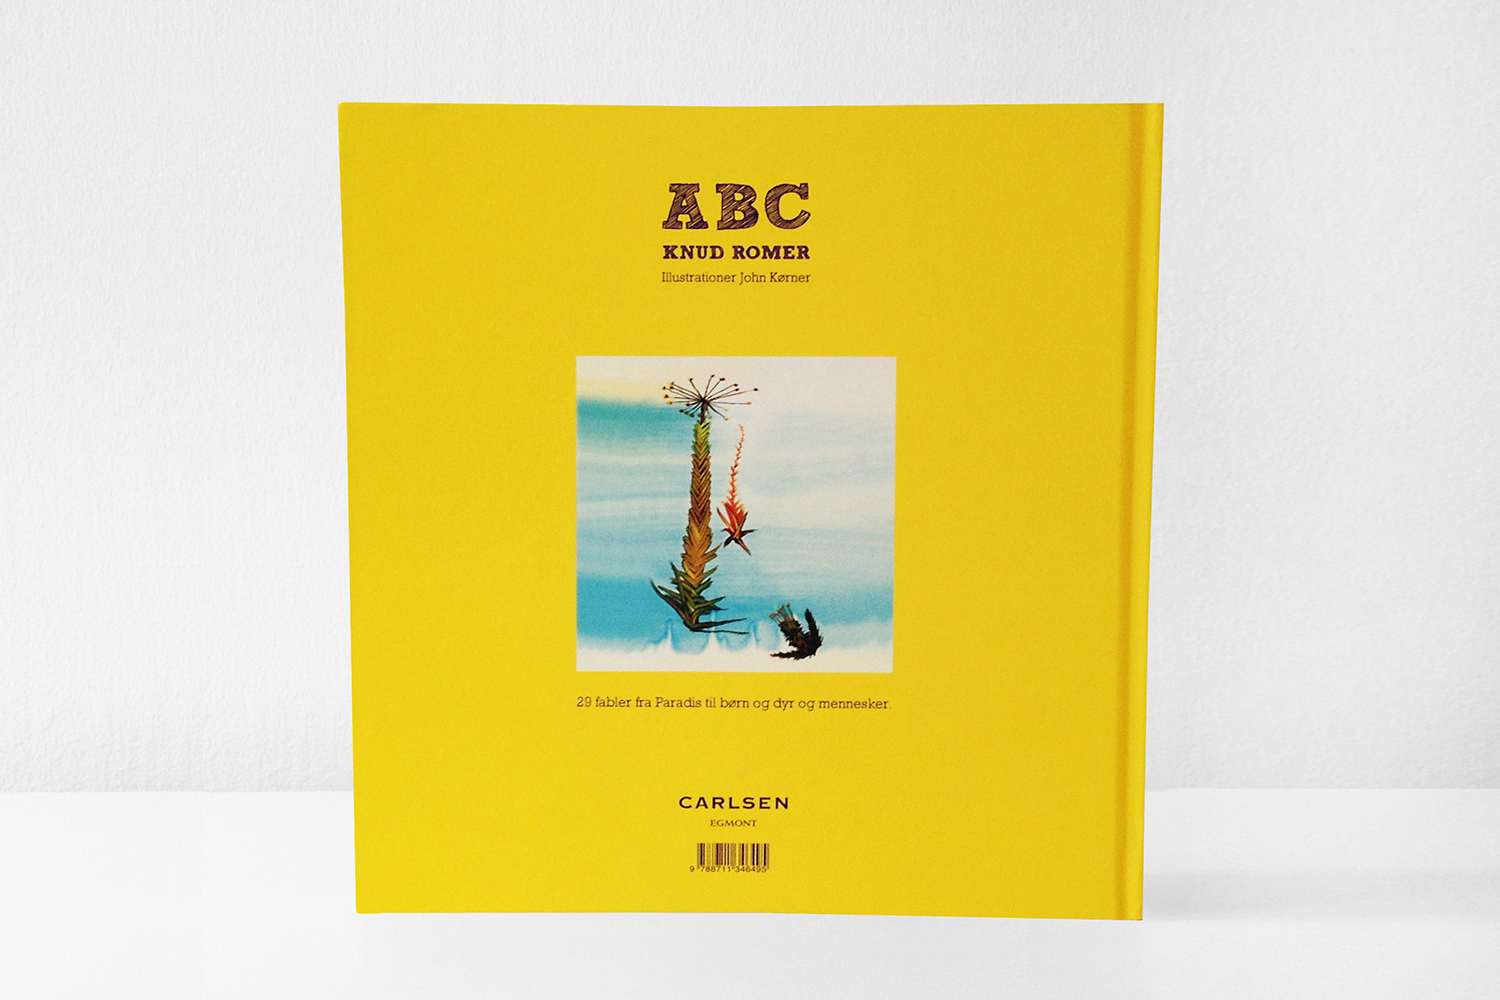 ABC by Knud Romer and John Kørner